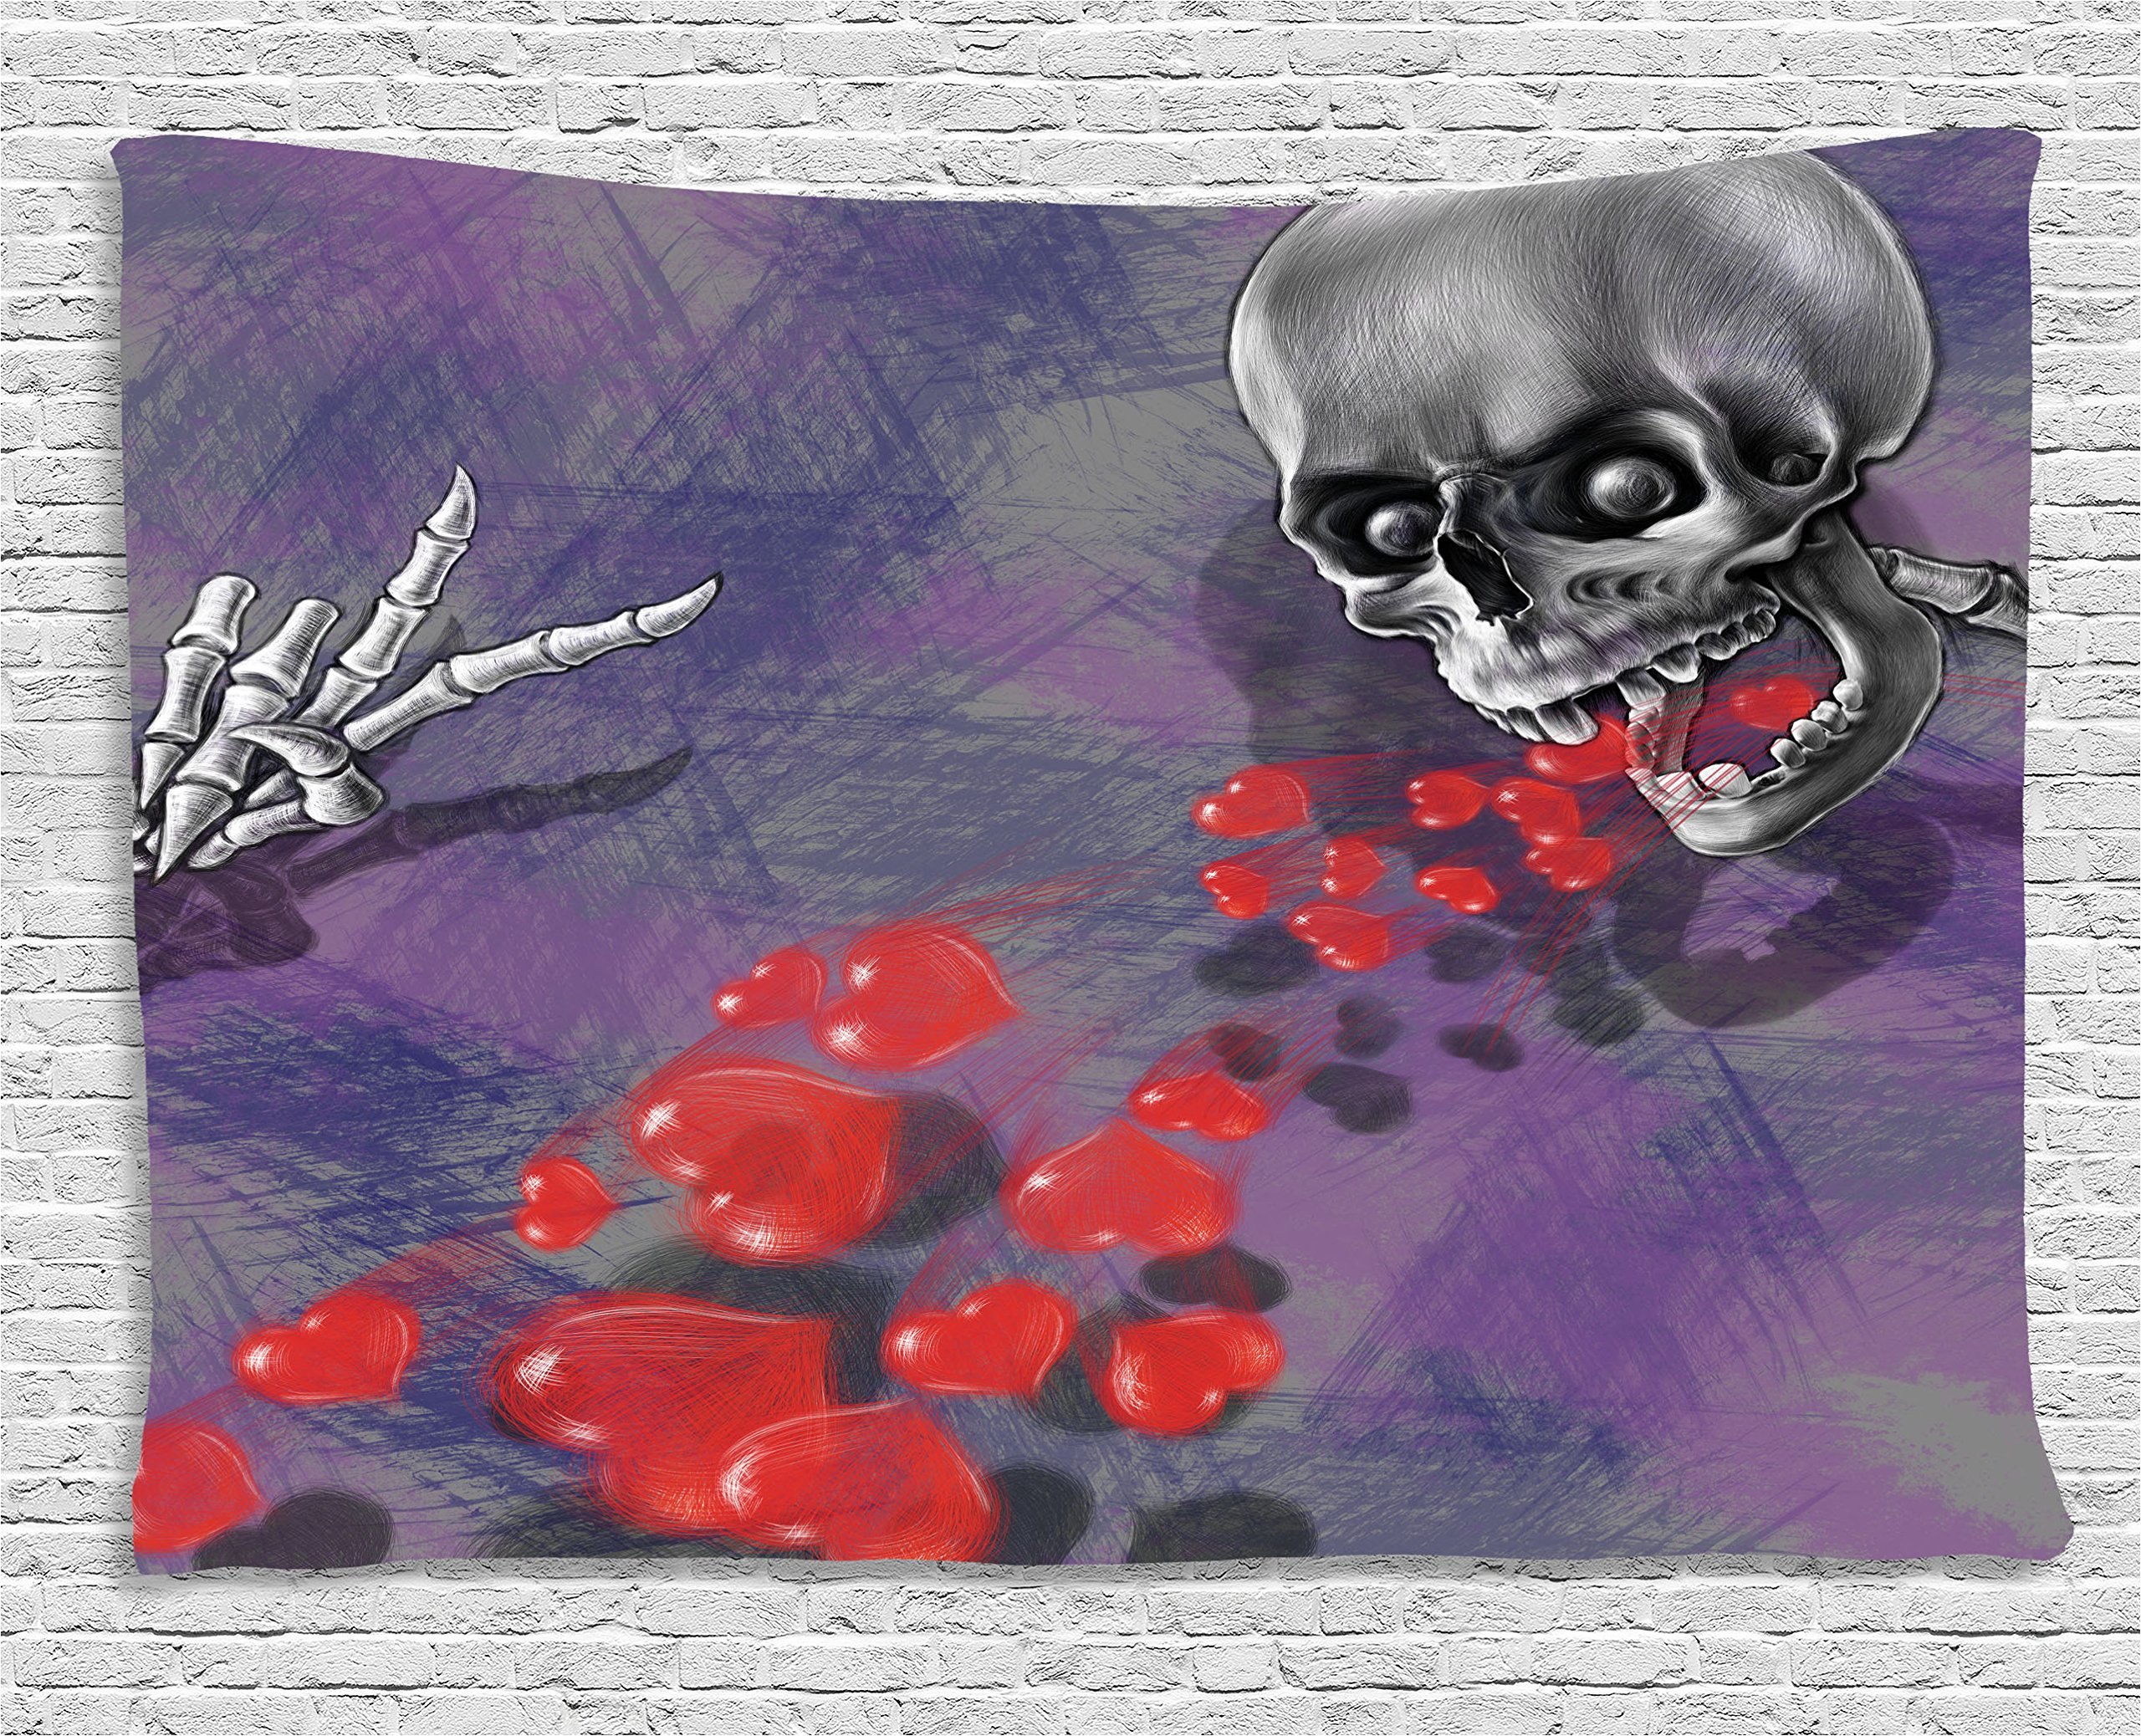 Ambesonne Skull Decor Tapestry, Skeleton in Love Throw Out Puke of Hearts Deadly Romantic Gesture Art, Wall Hanging for Bedroom Living Room Dorm, 60 W X 40 L inches, Grey Red and Purple